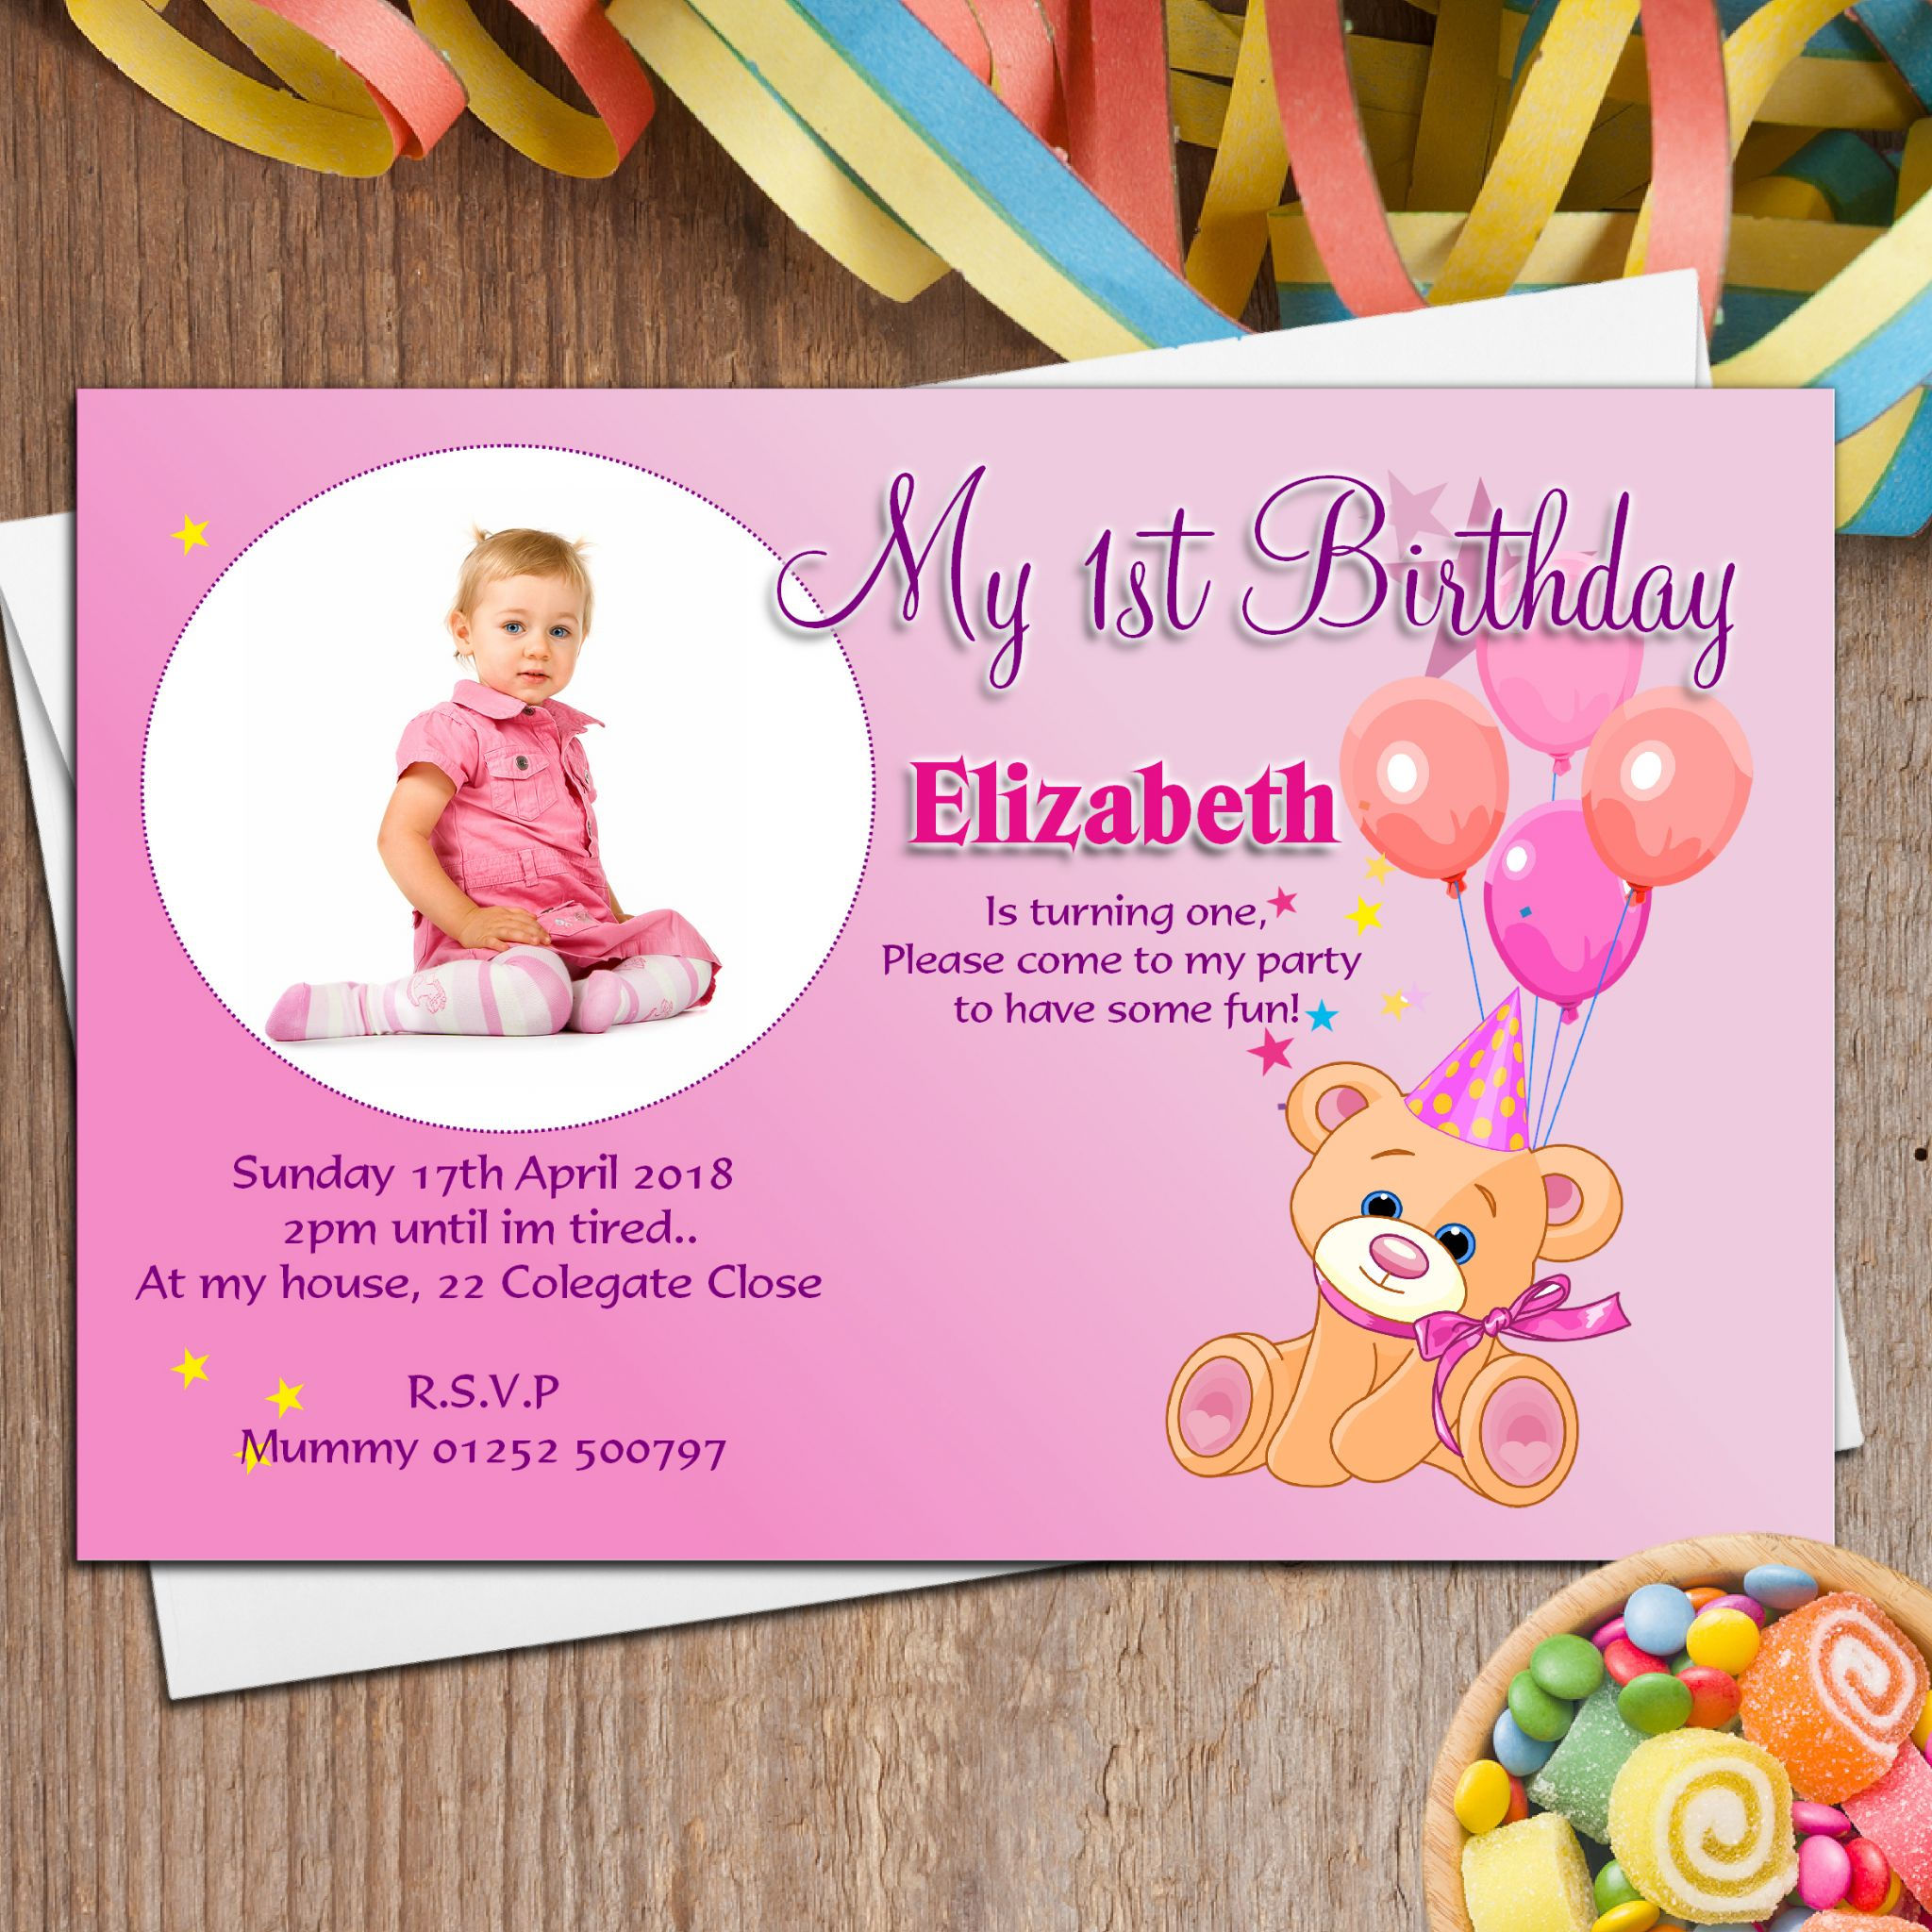 free online birthday invitation cards with photo ; free-online-first-birthday-invitation-cards-is-most-katadifat-ideas-you-could-choose-for-Birthday-Invitations-sample-12